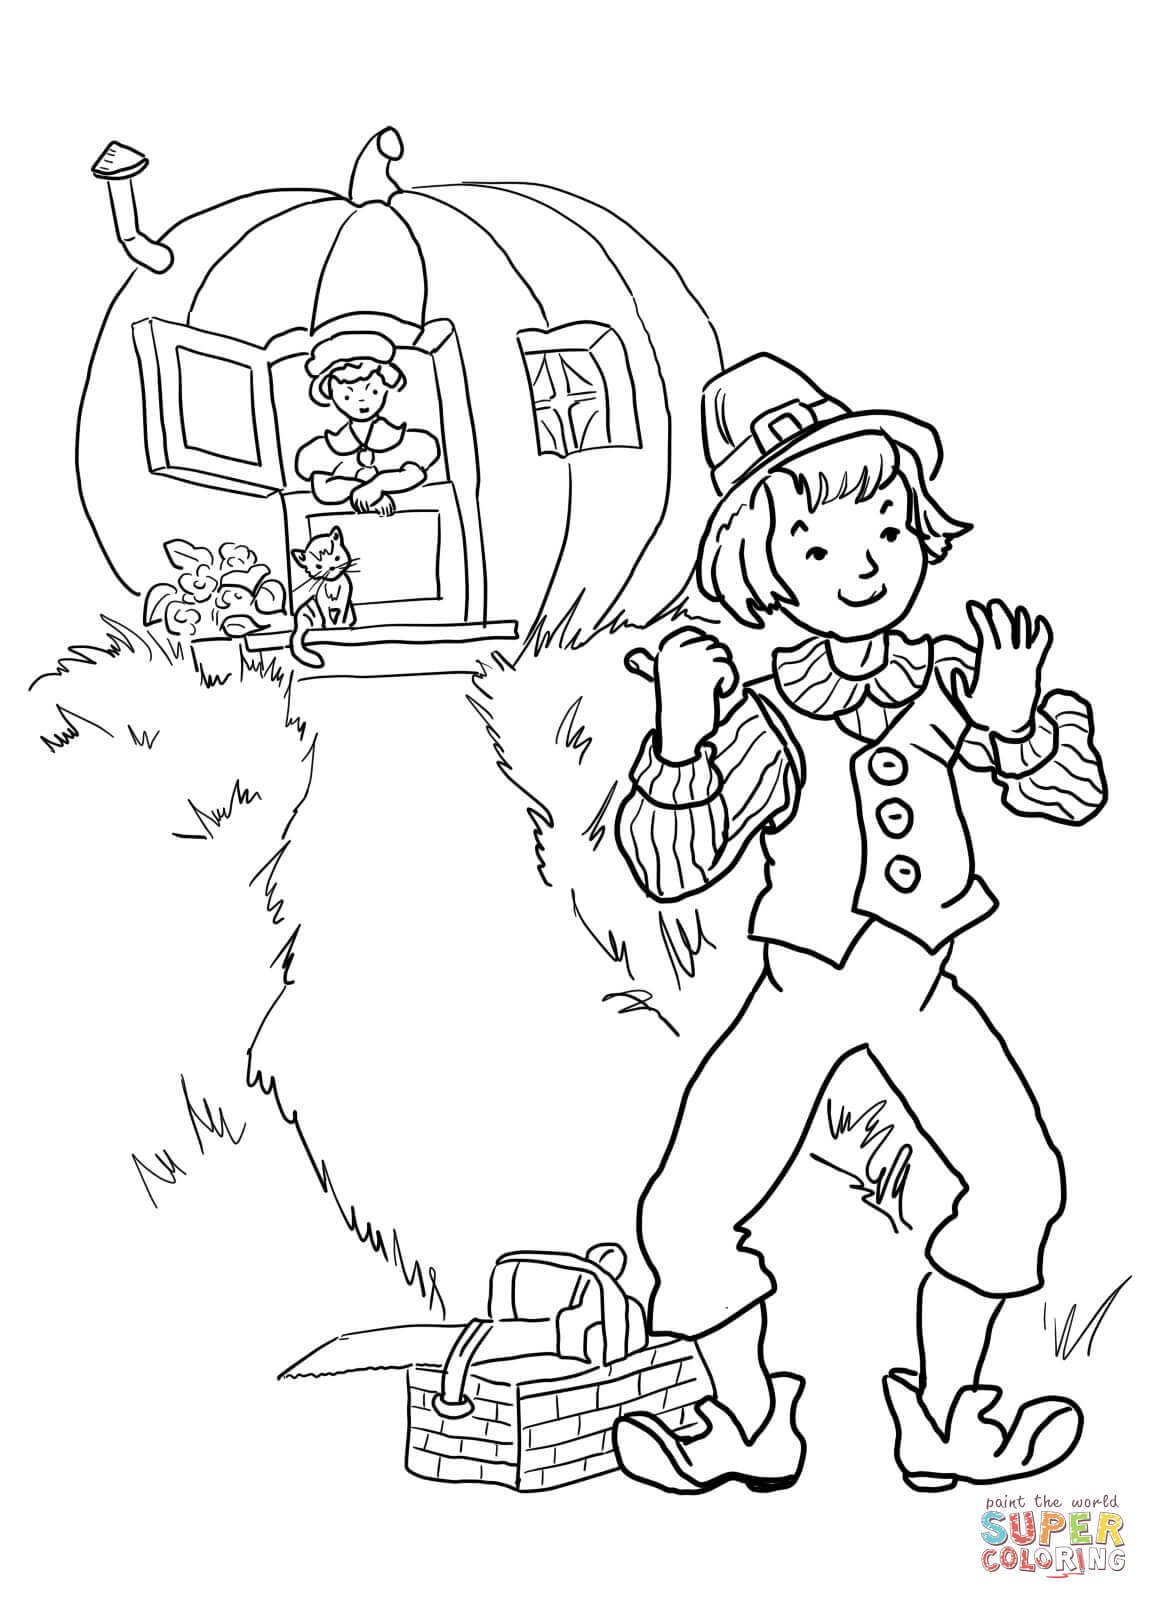 Peter Peter Pumpkin Eater Coloring Page